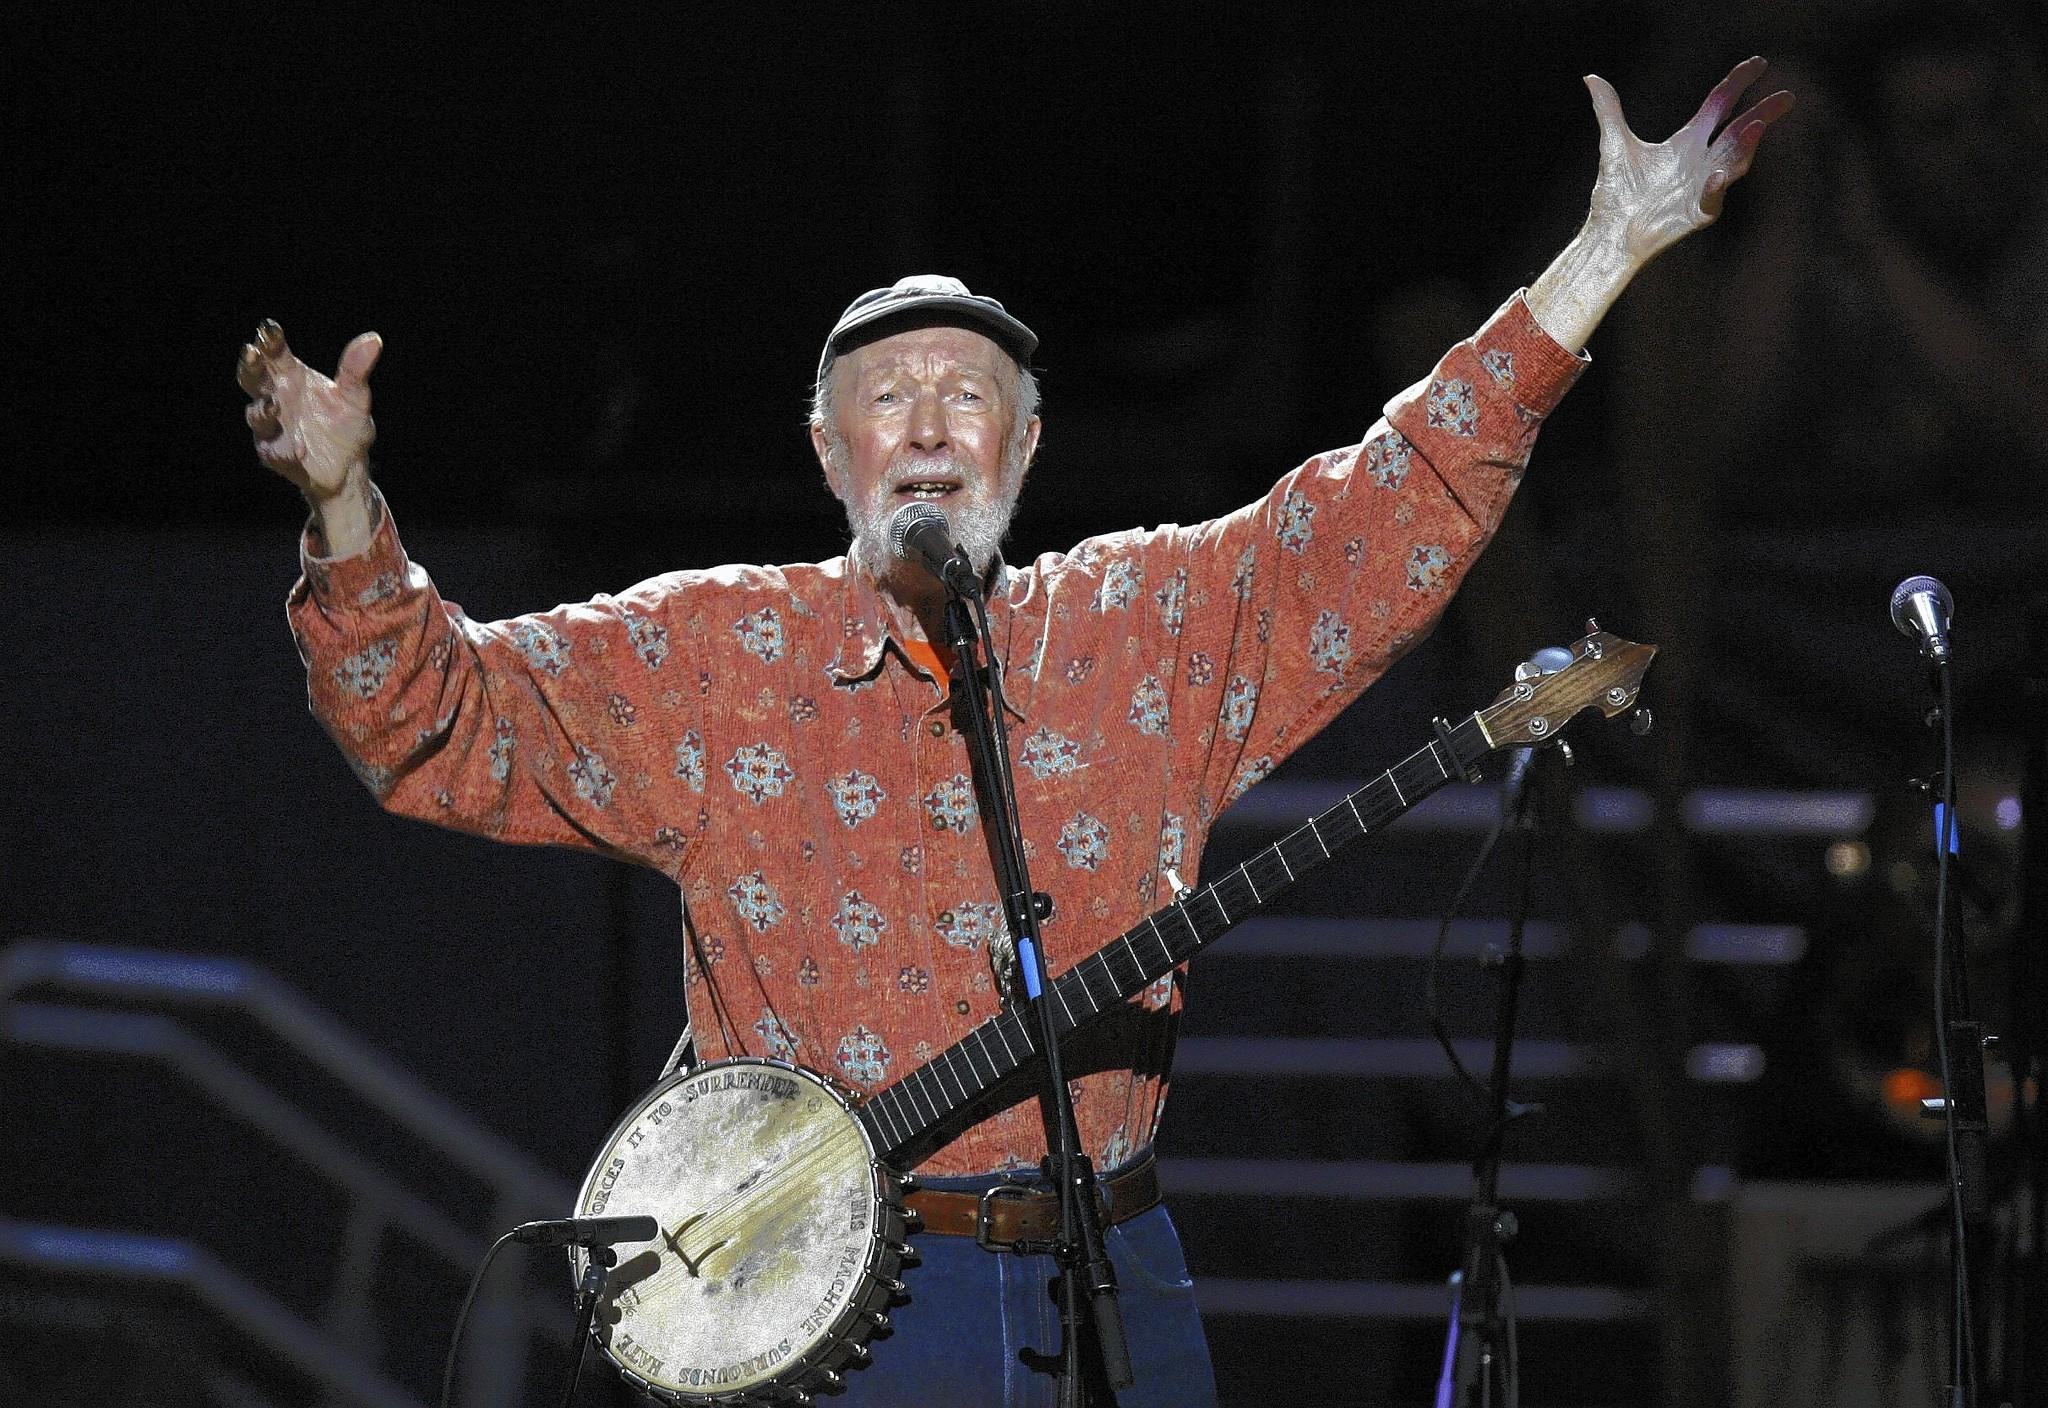 Musician Pete Seeger, shown celebrating his 90th birthday, died Jan. 27 at the age of 94. There now are efforts to have a Hudson River bridge named for him.